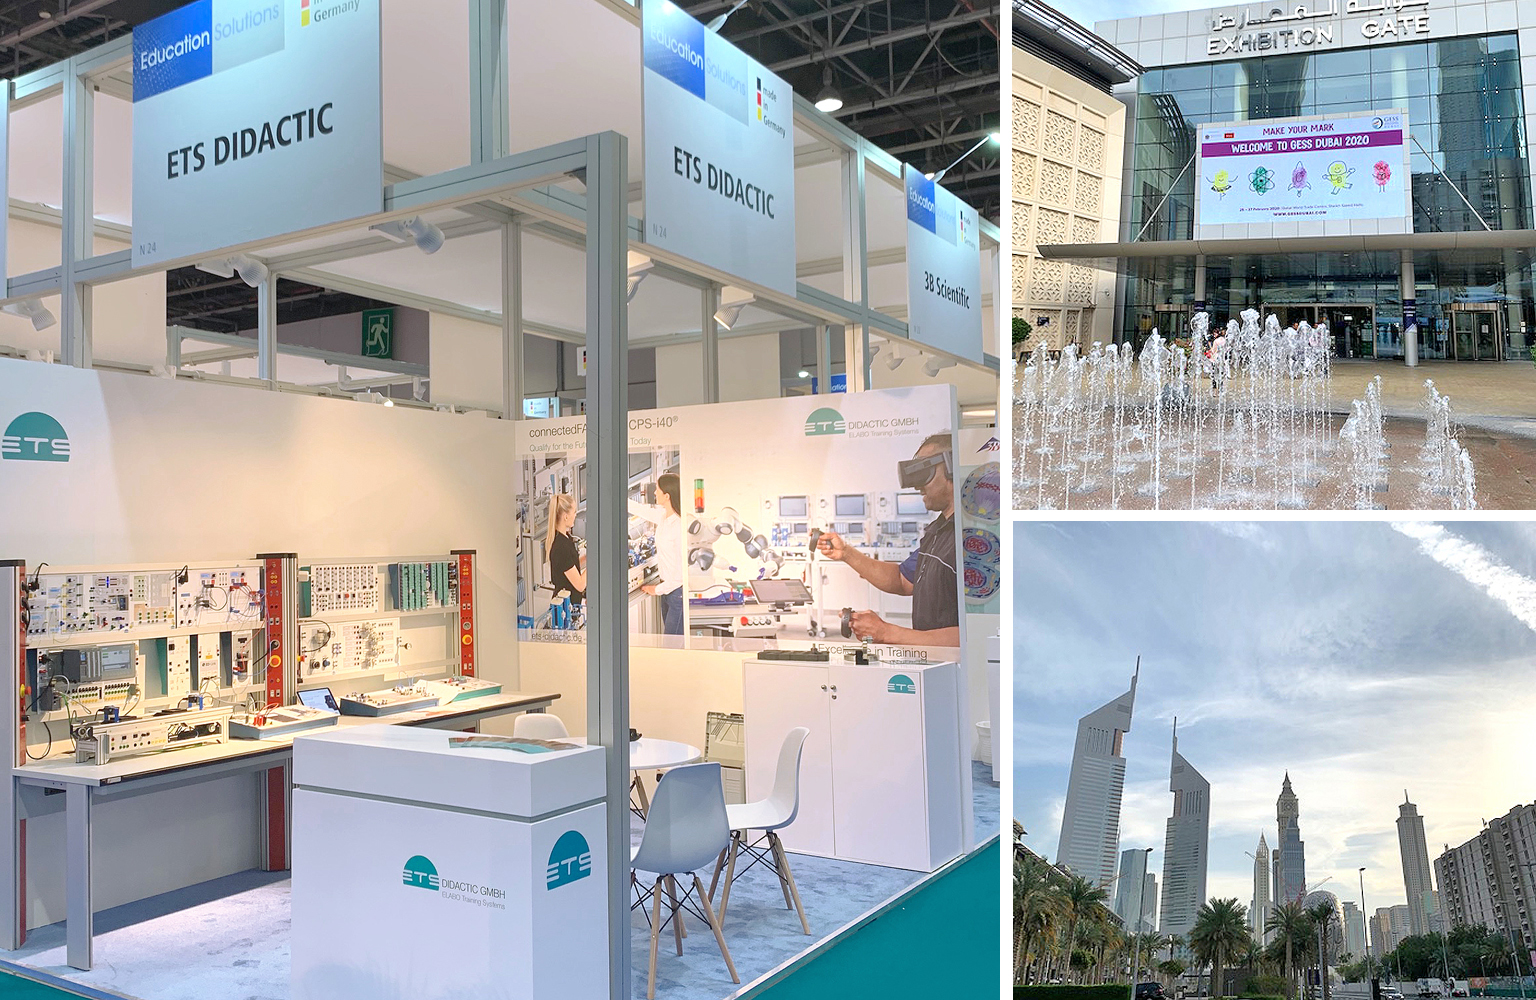 GESS 2020 - Positives Messe-Feedback in Dubai